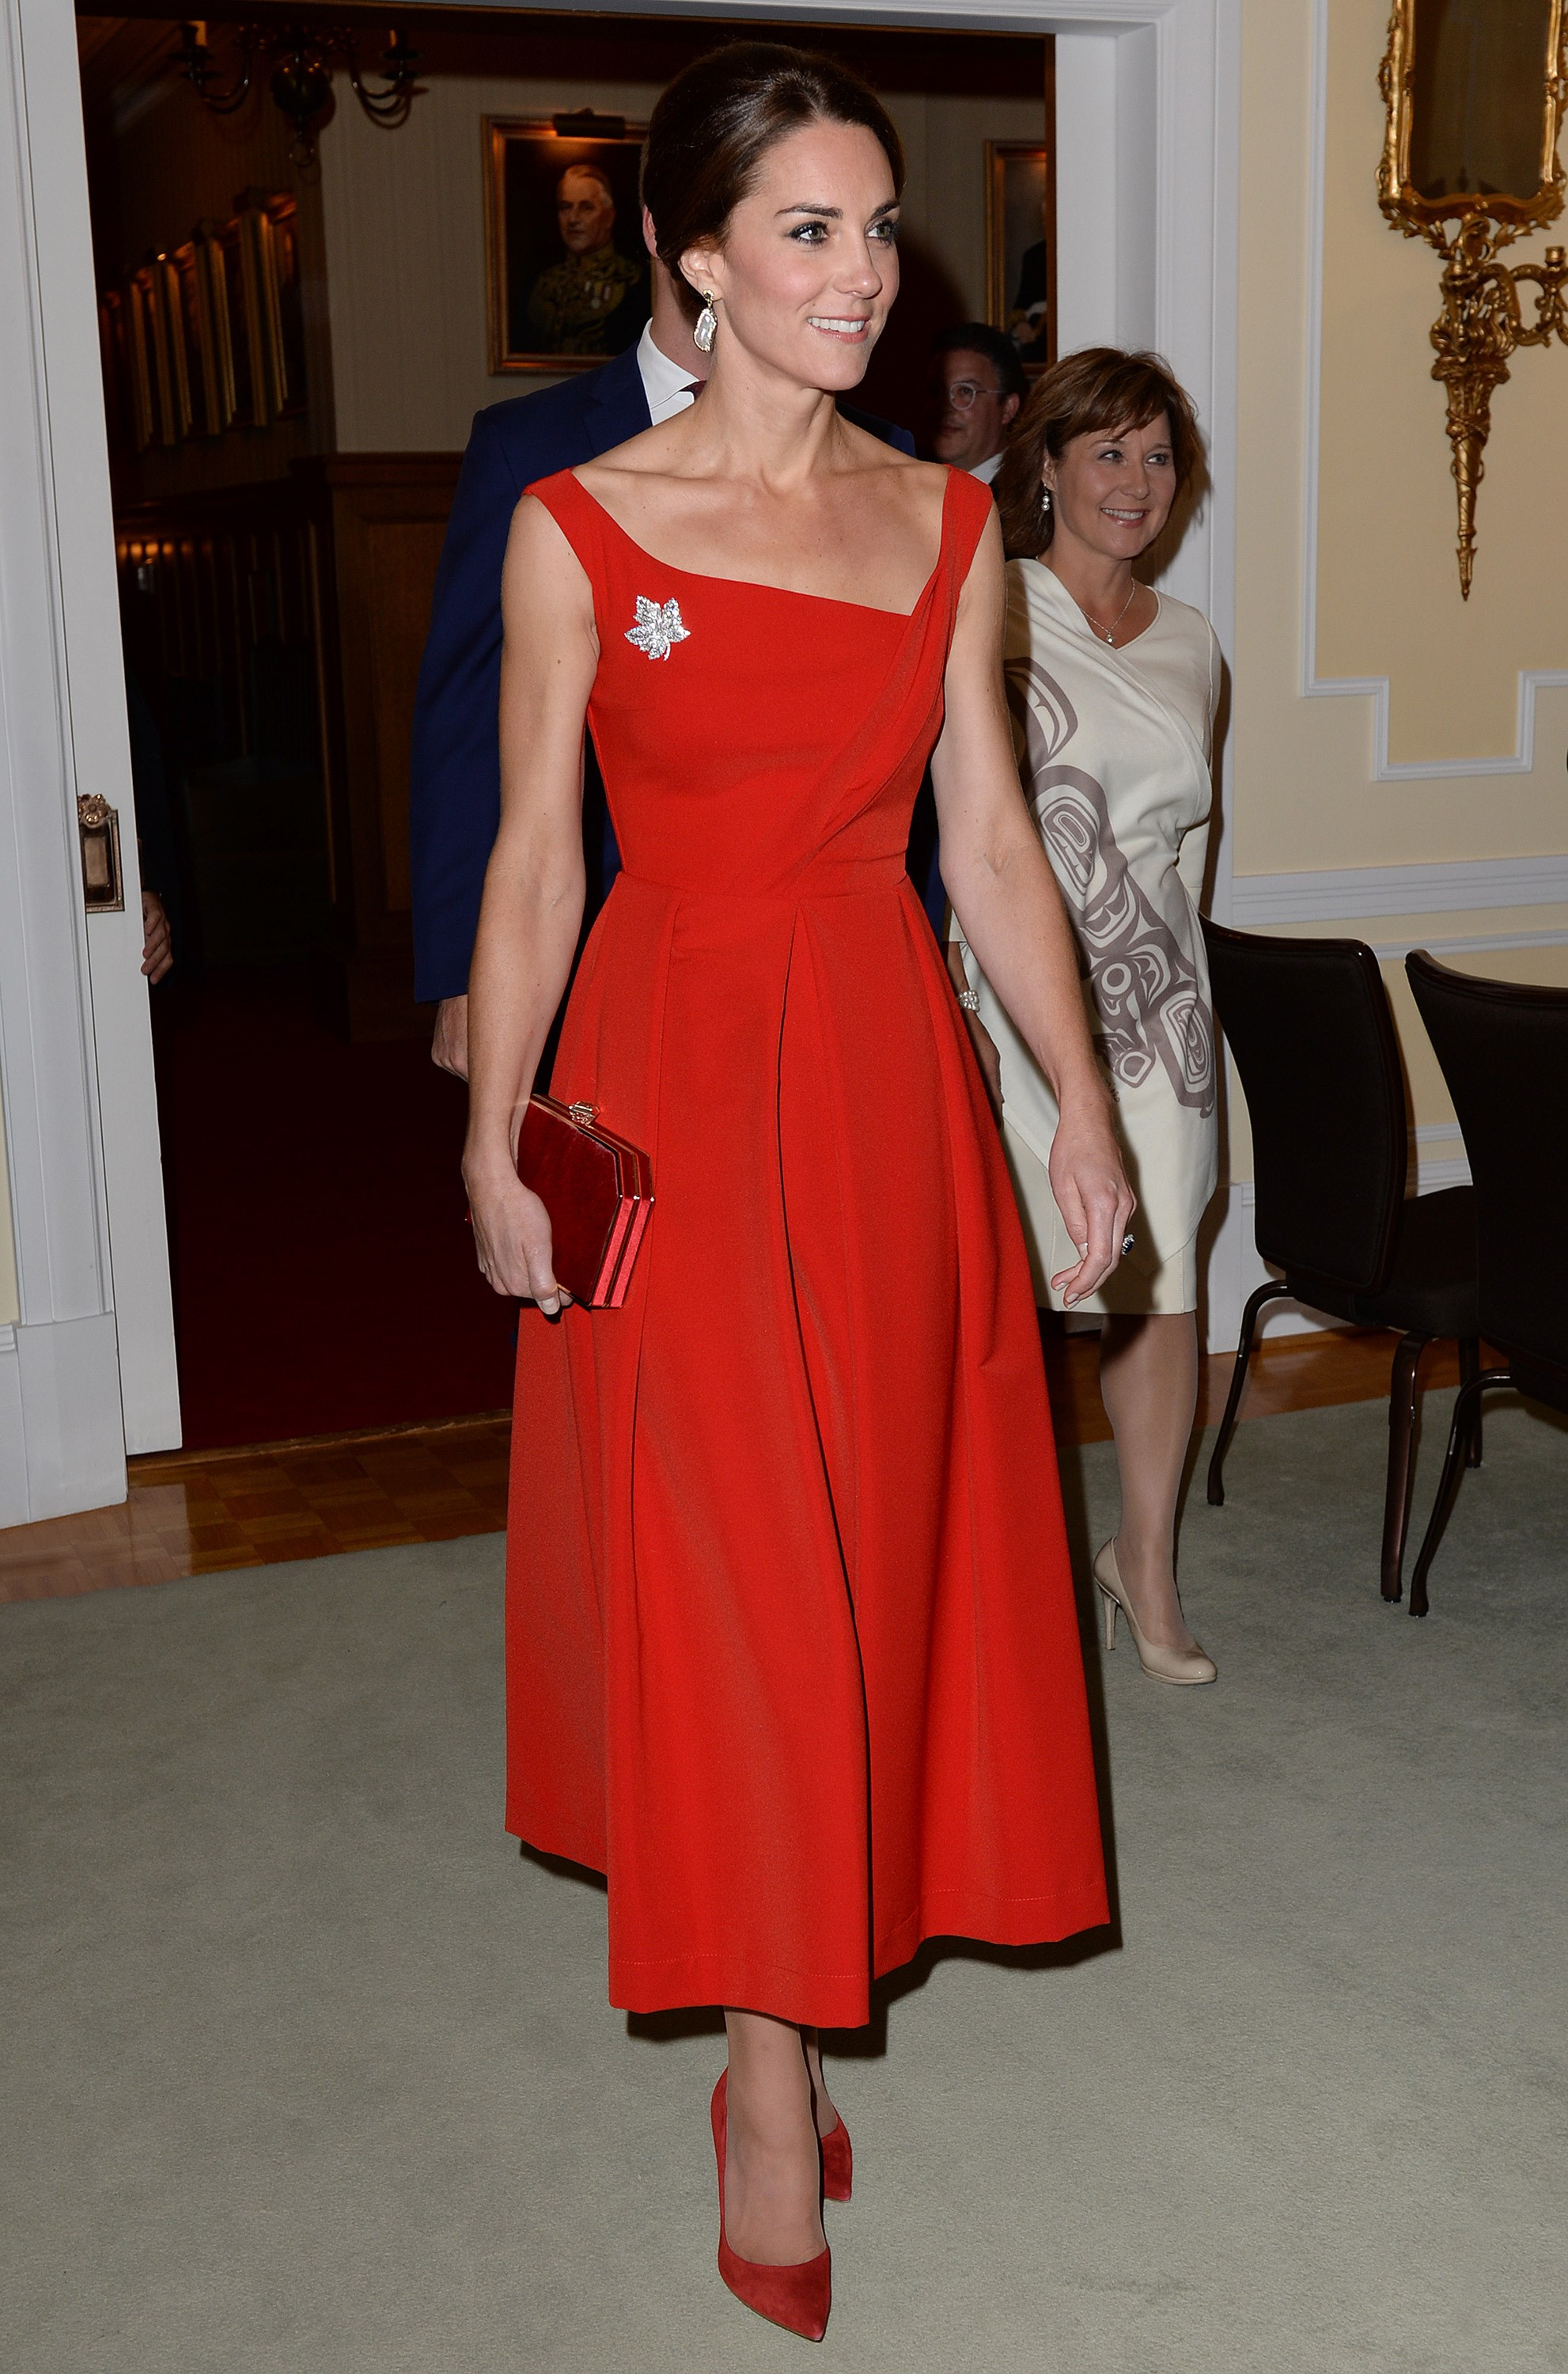 Is this the Duchess' most stunning look ever? This gorgeous red gown is by Preen by Thornton Bregazzi, which she wore with a maple leaf brooch in homage to the Canadian flag. She and William were dressed up to attend a reception for political and civic leaders in British Columbia.